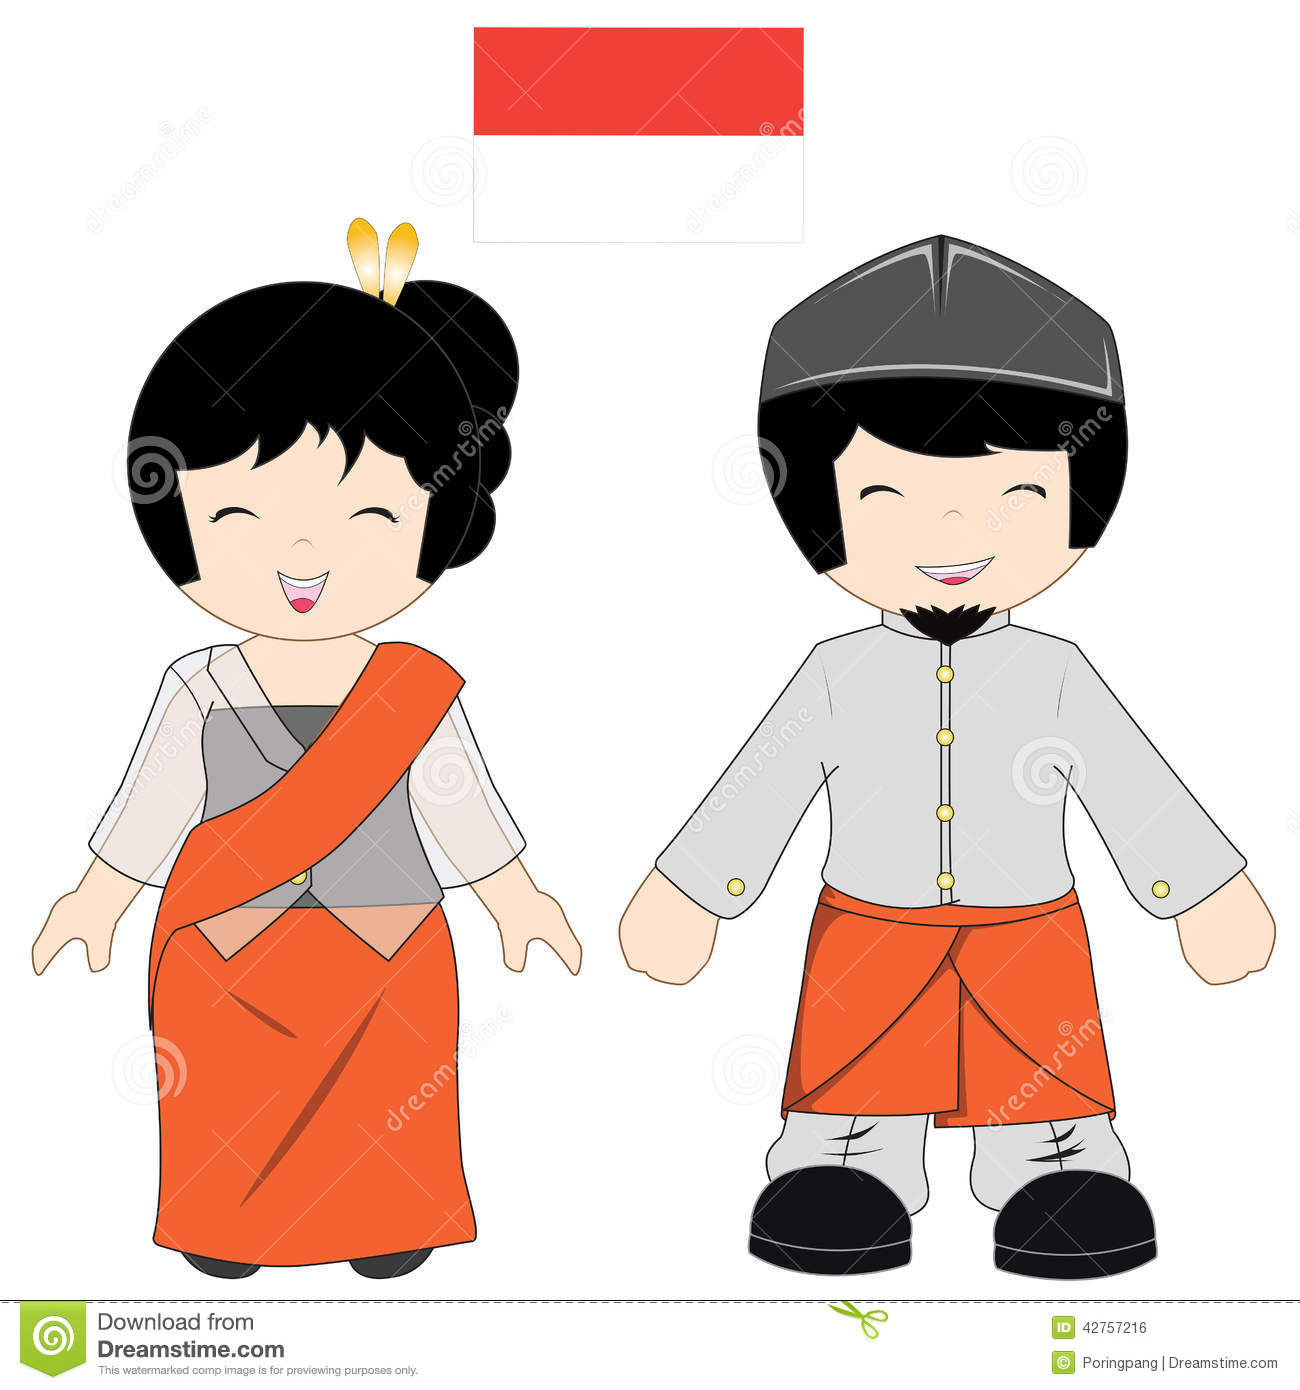 National Dress clipart indonesian #1